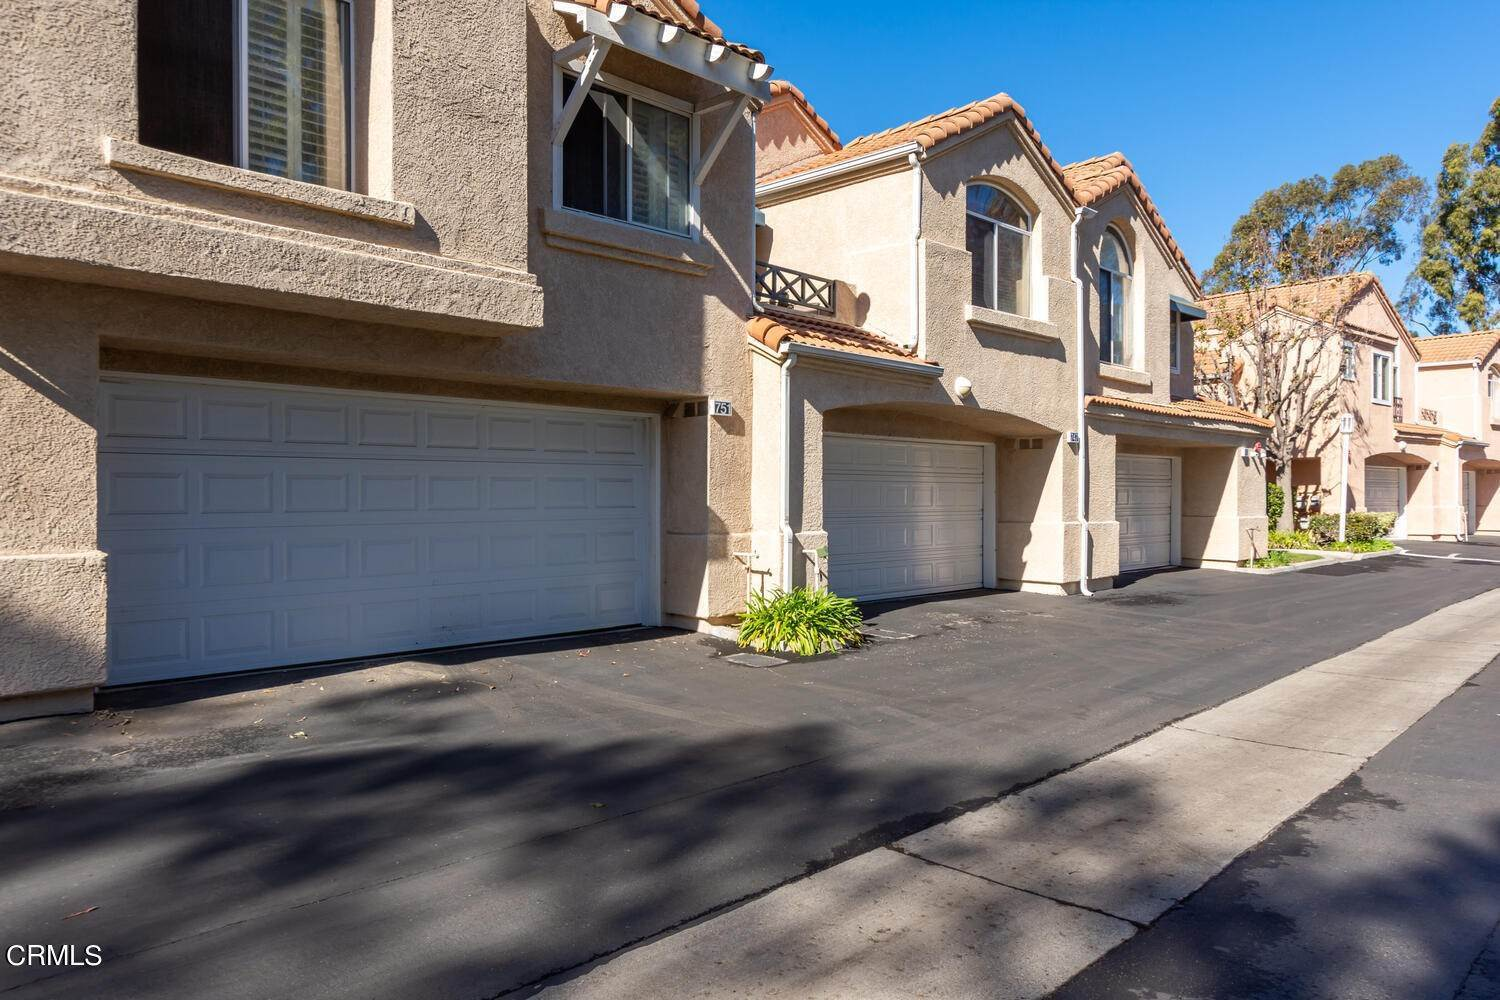 20. townhouses for Sale at 751 Kingfisher Way Oxnard, California 93030 United States